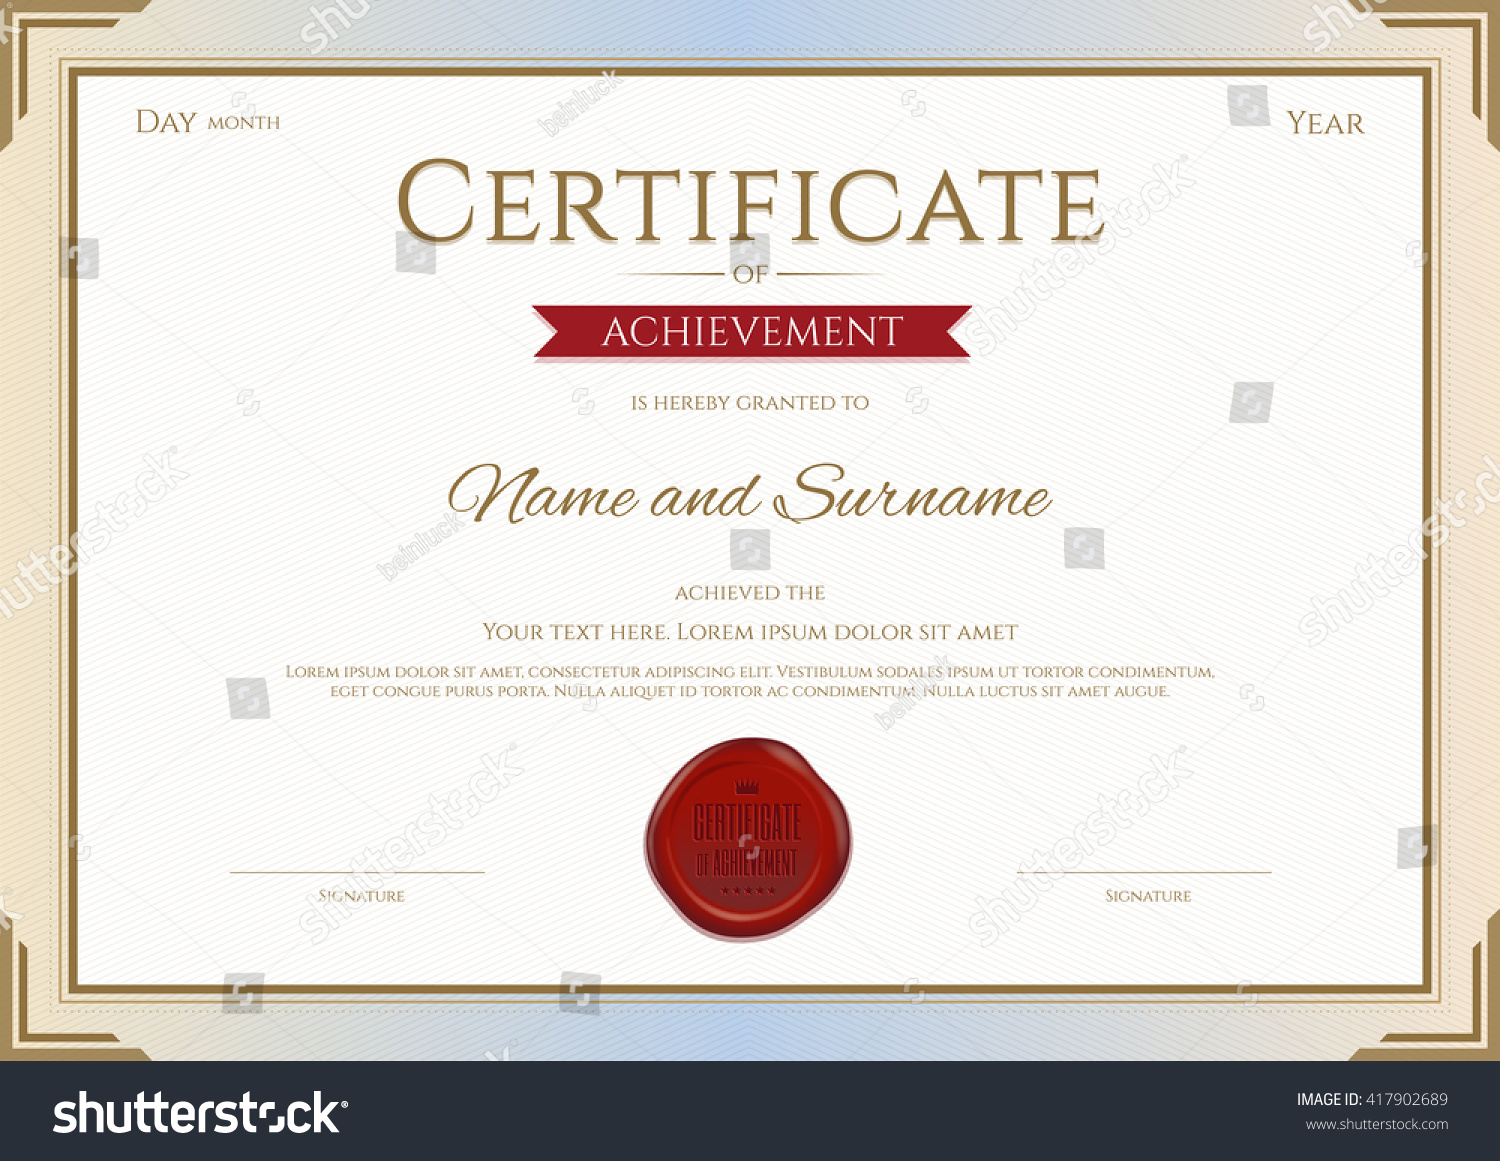 certificate achievement template red wax seal stock vector 417902689